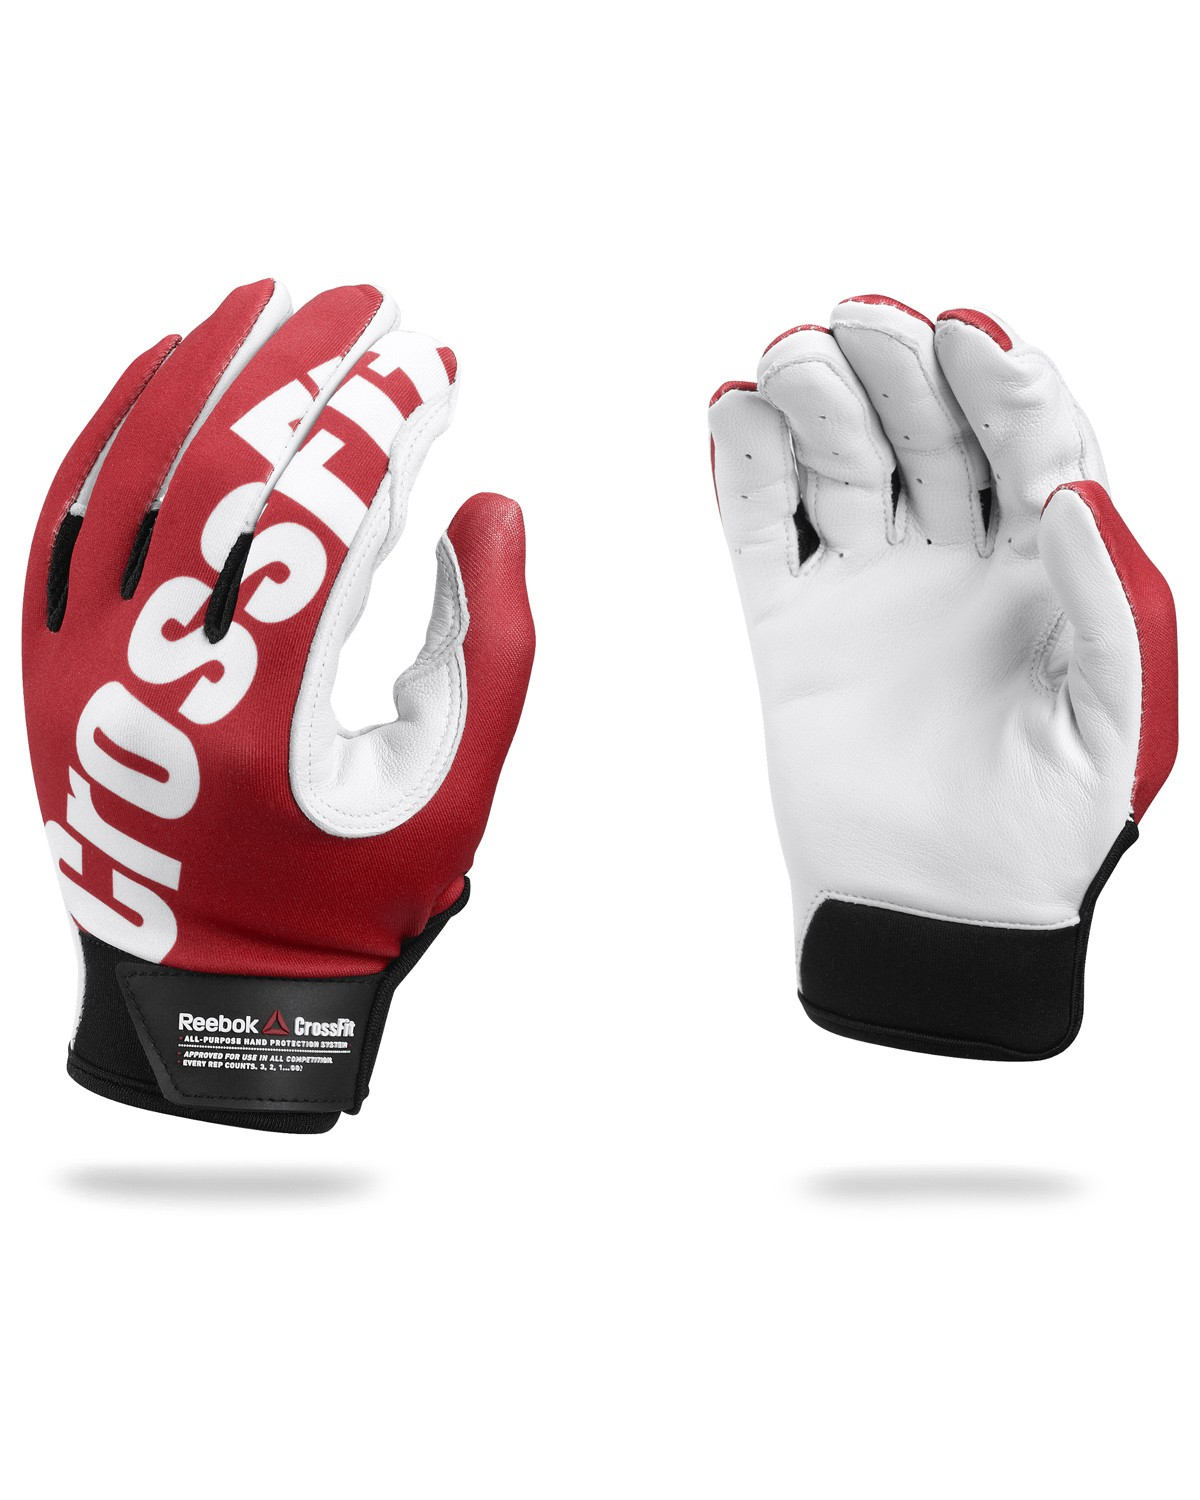 Reebok Crossfit Training Gloves: Monday, December 3, 2012